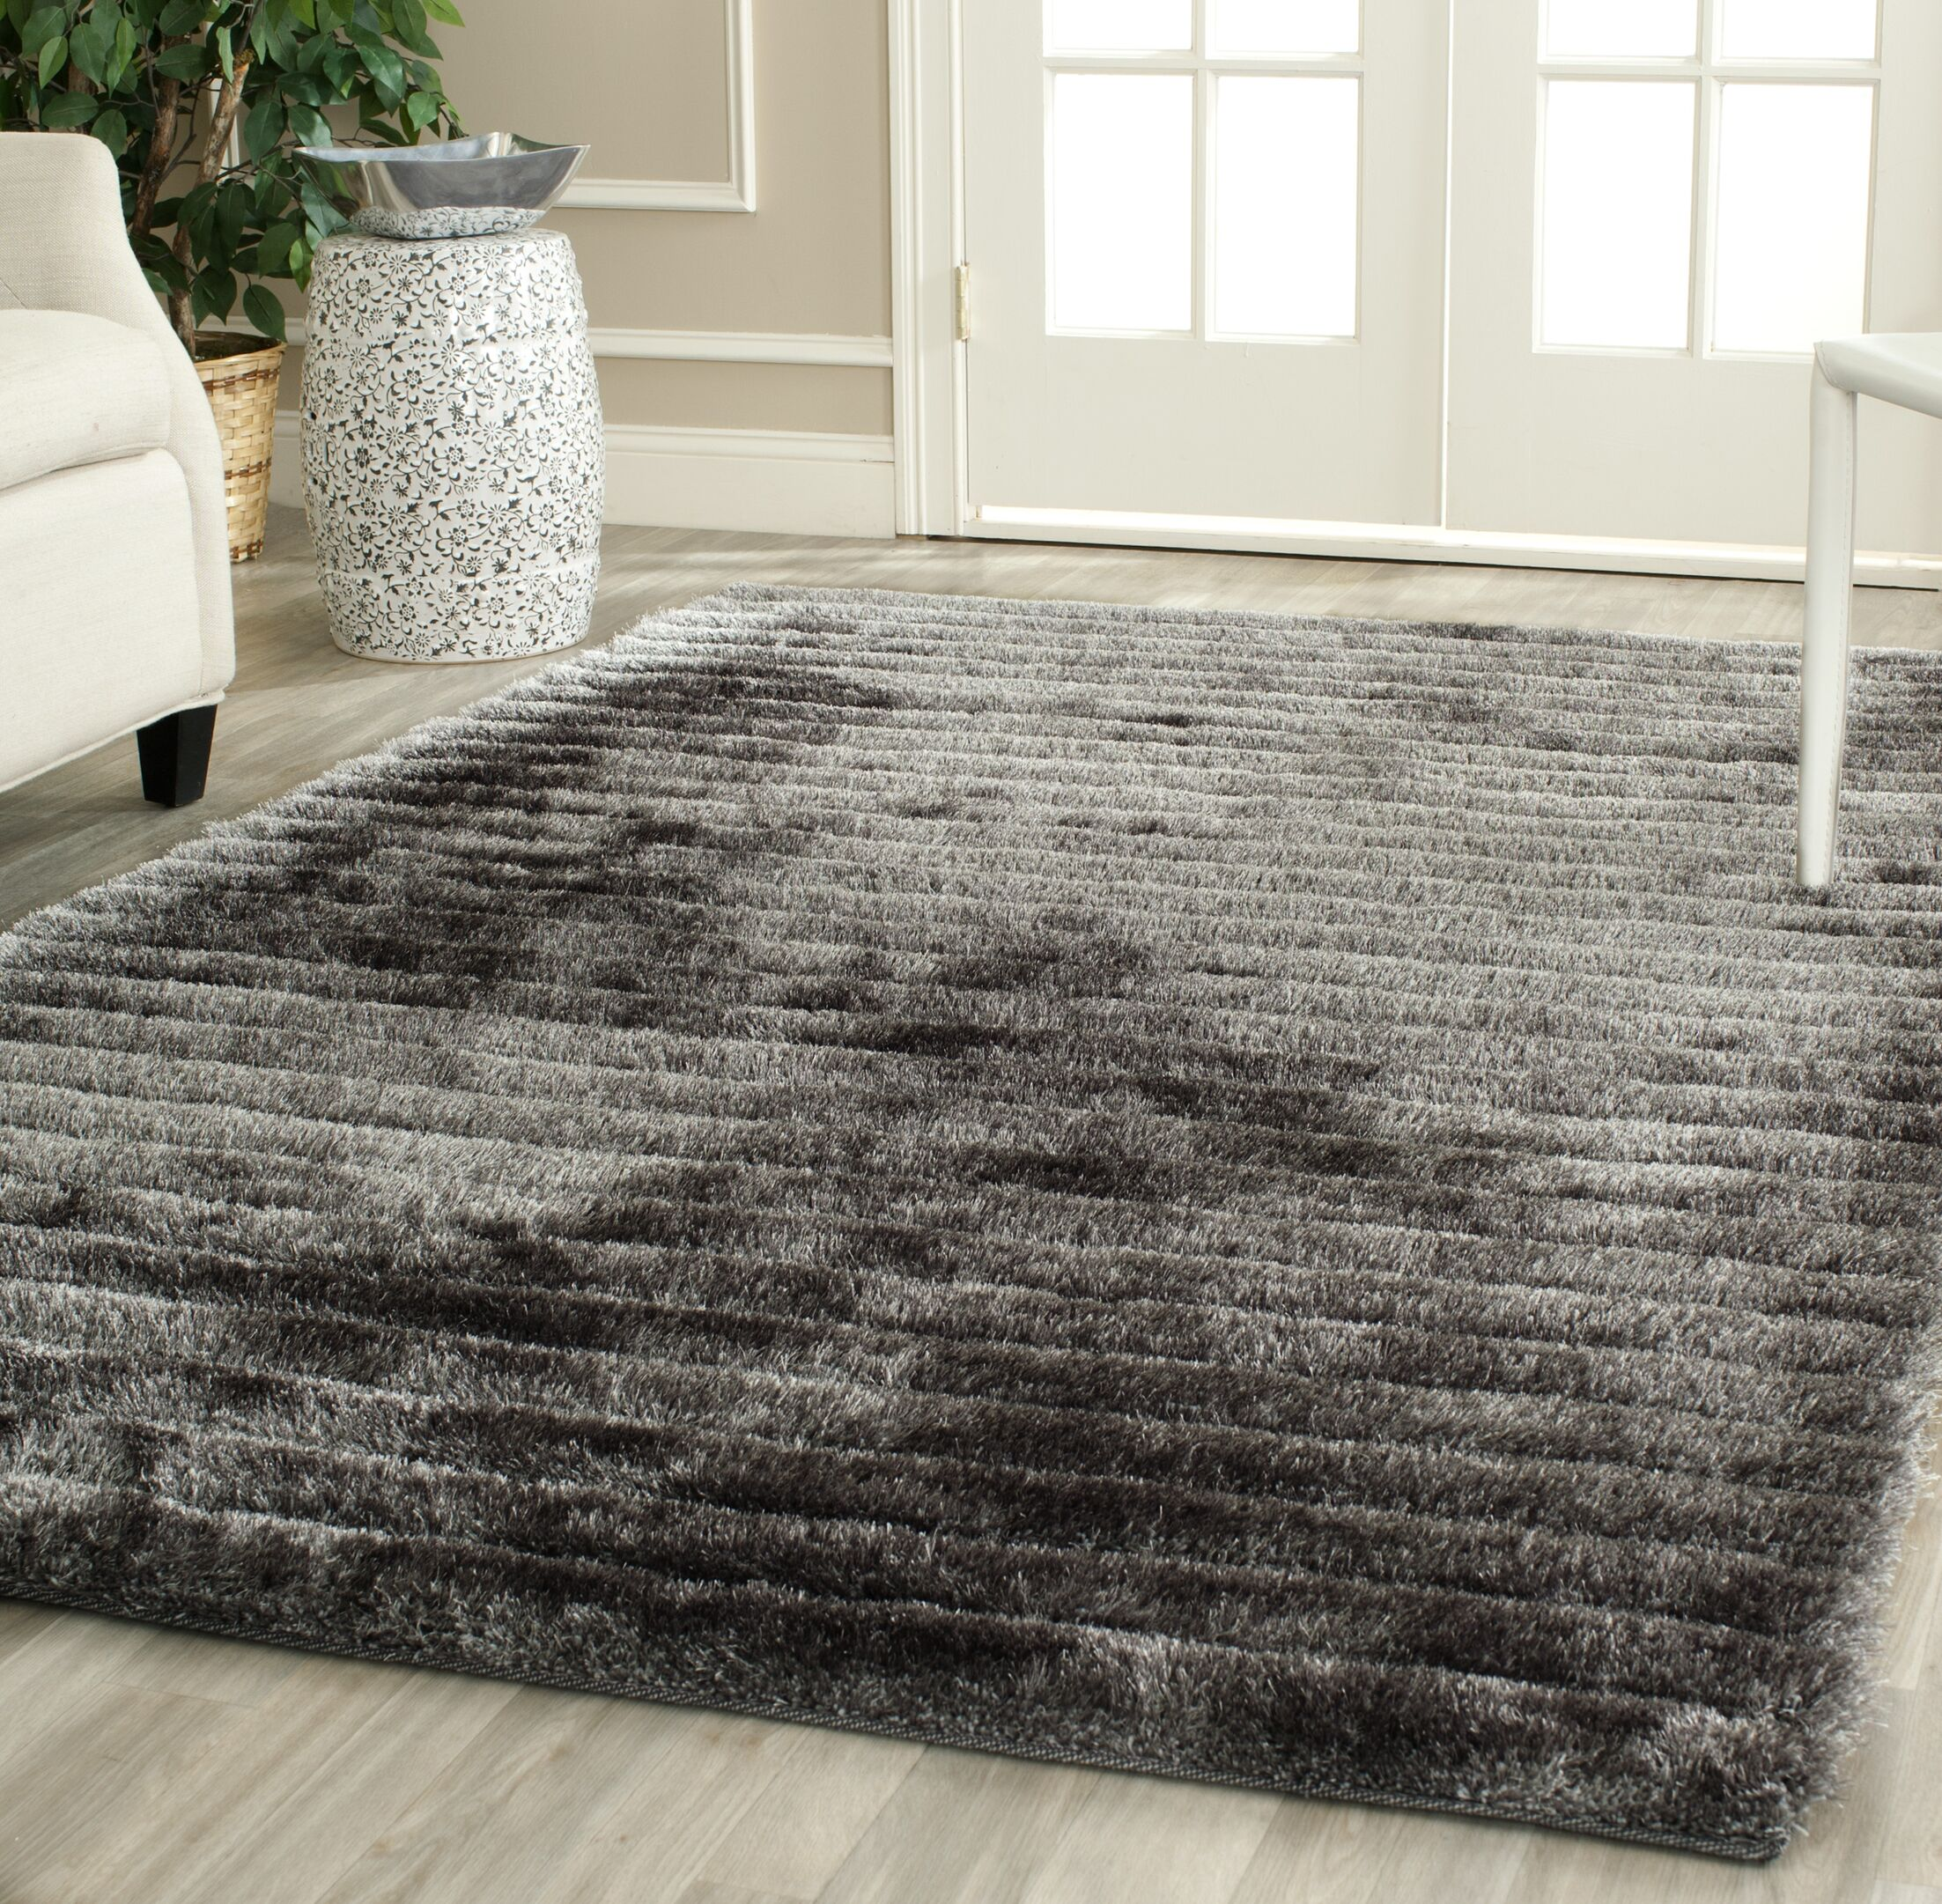 Wyler Hand-Tufted Silver Area Rug Rug Size: Round 6'